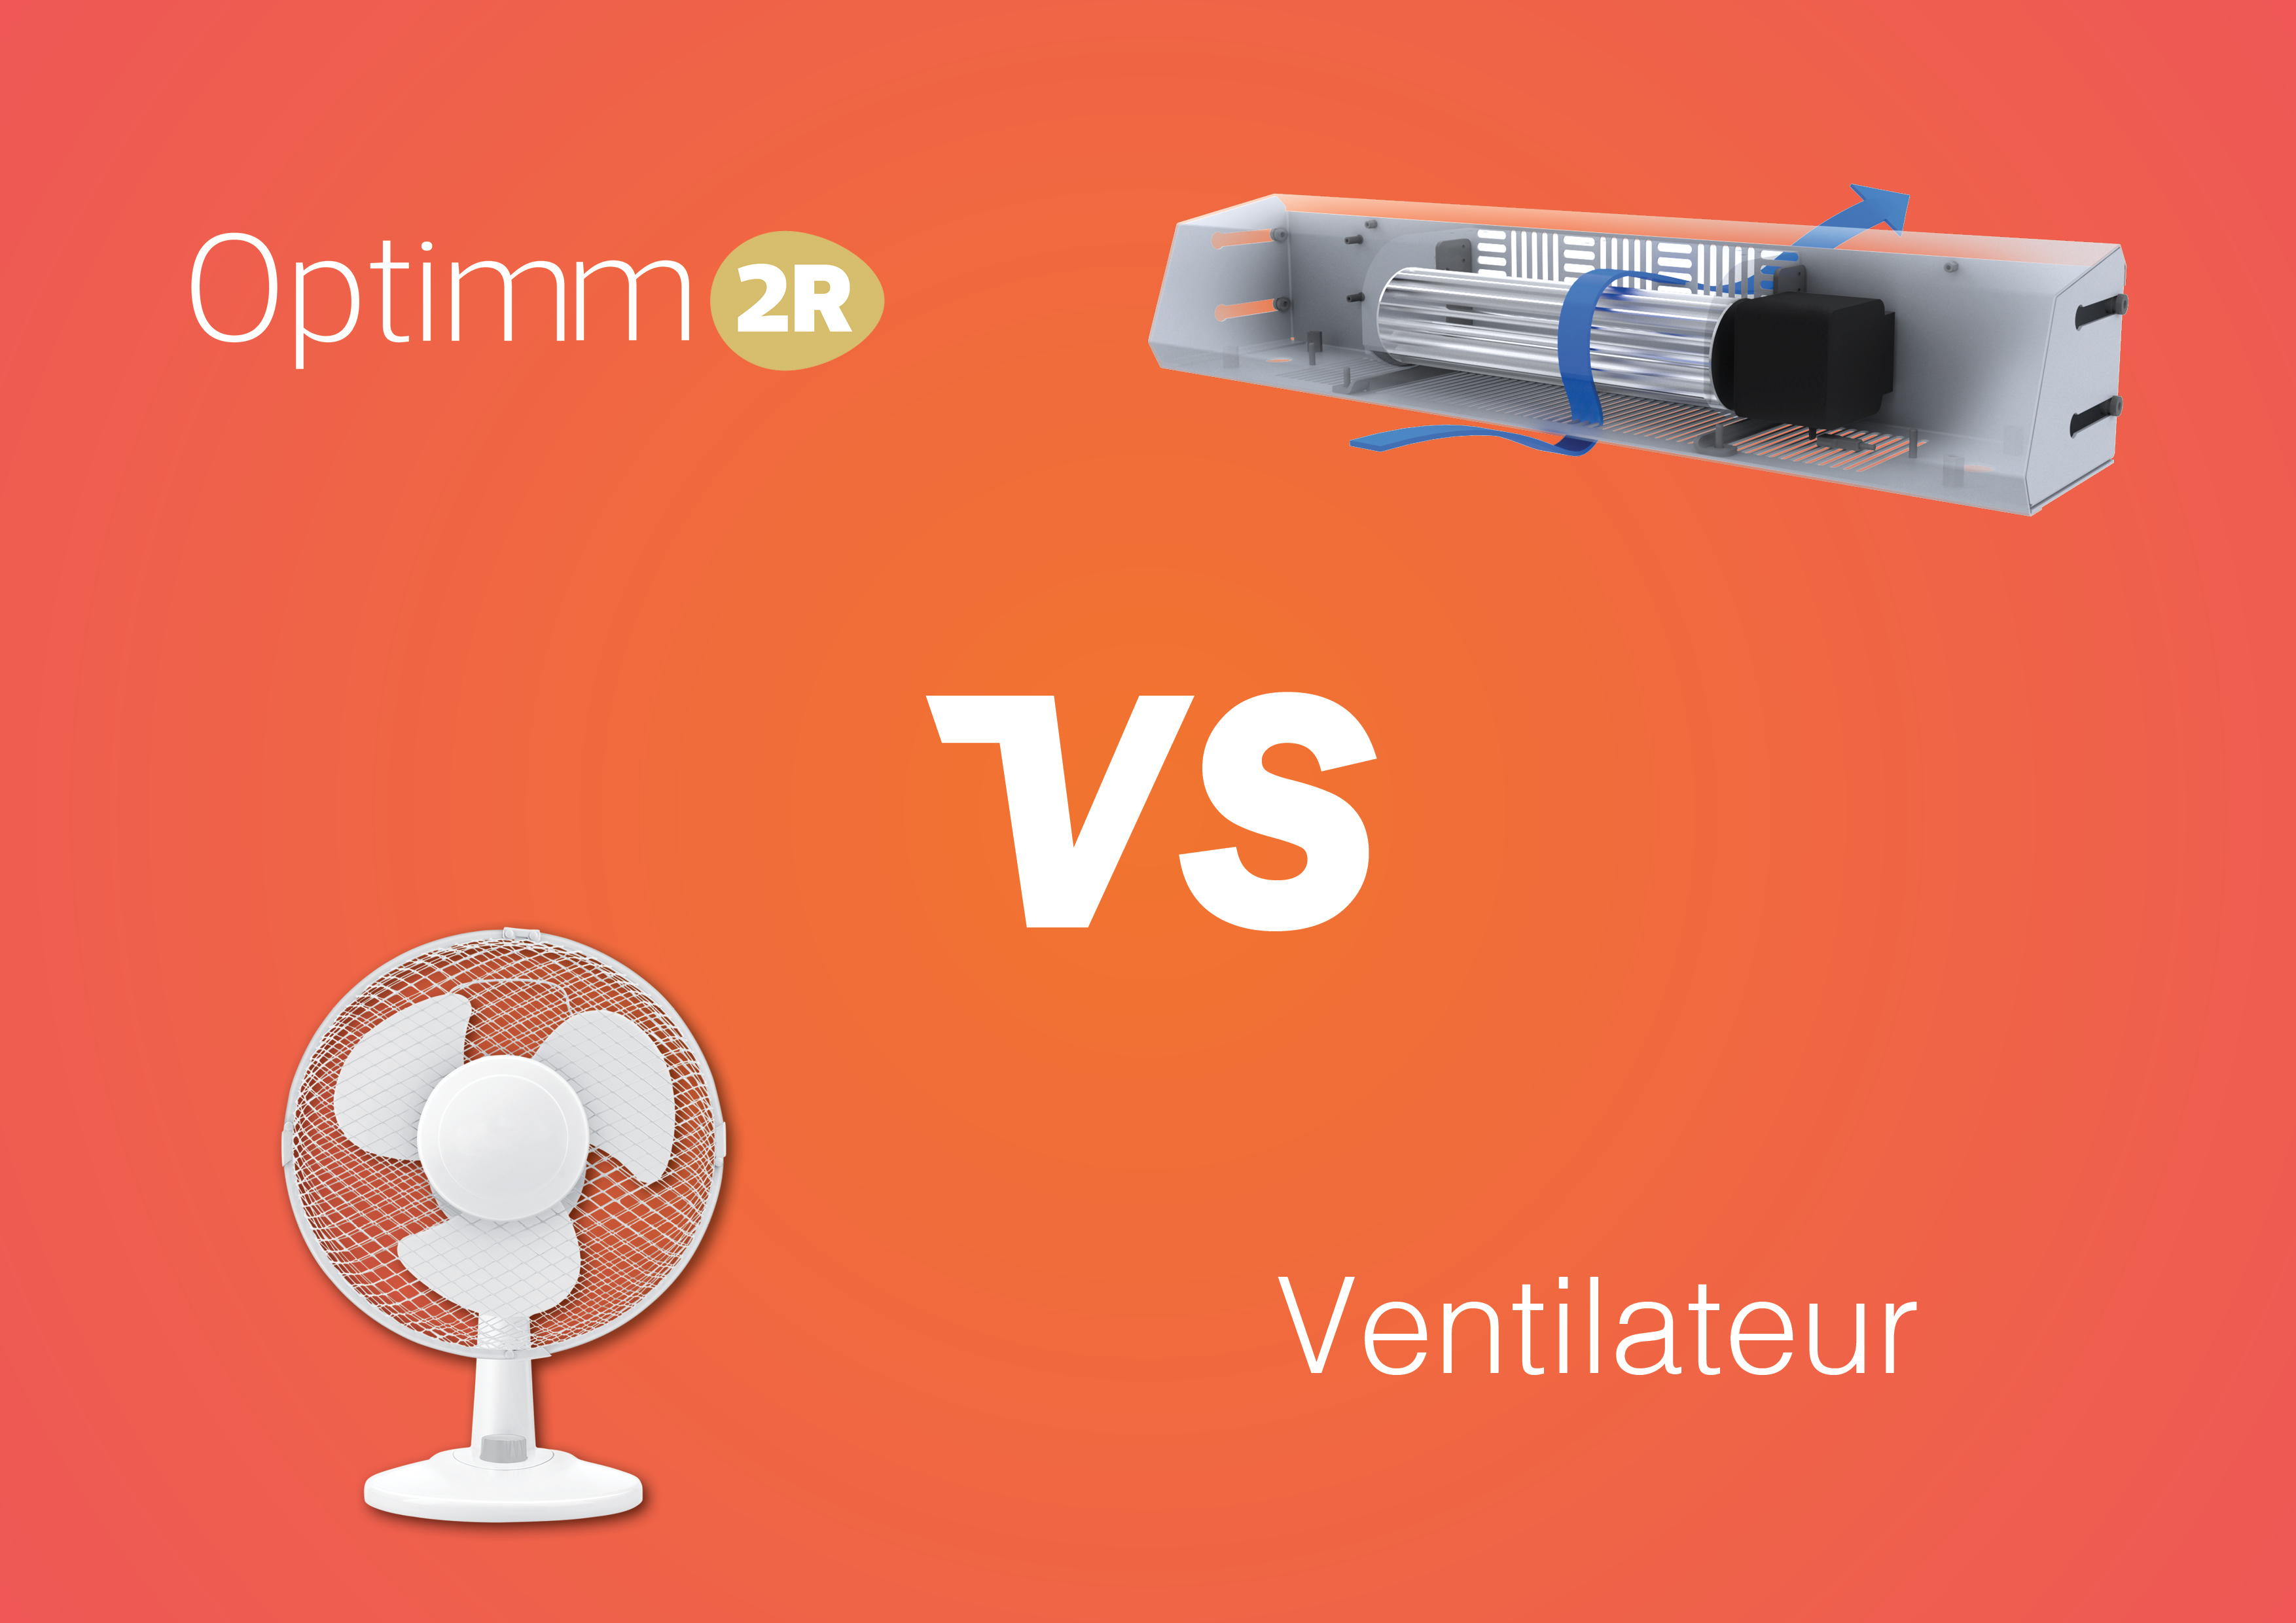 Ventilateur versus Optimm2R